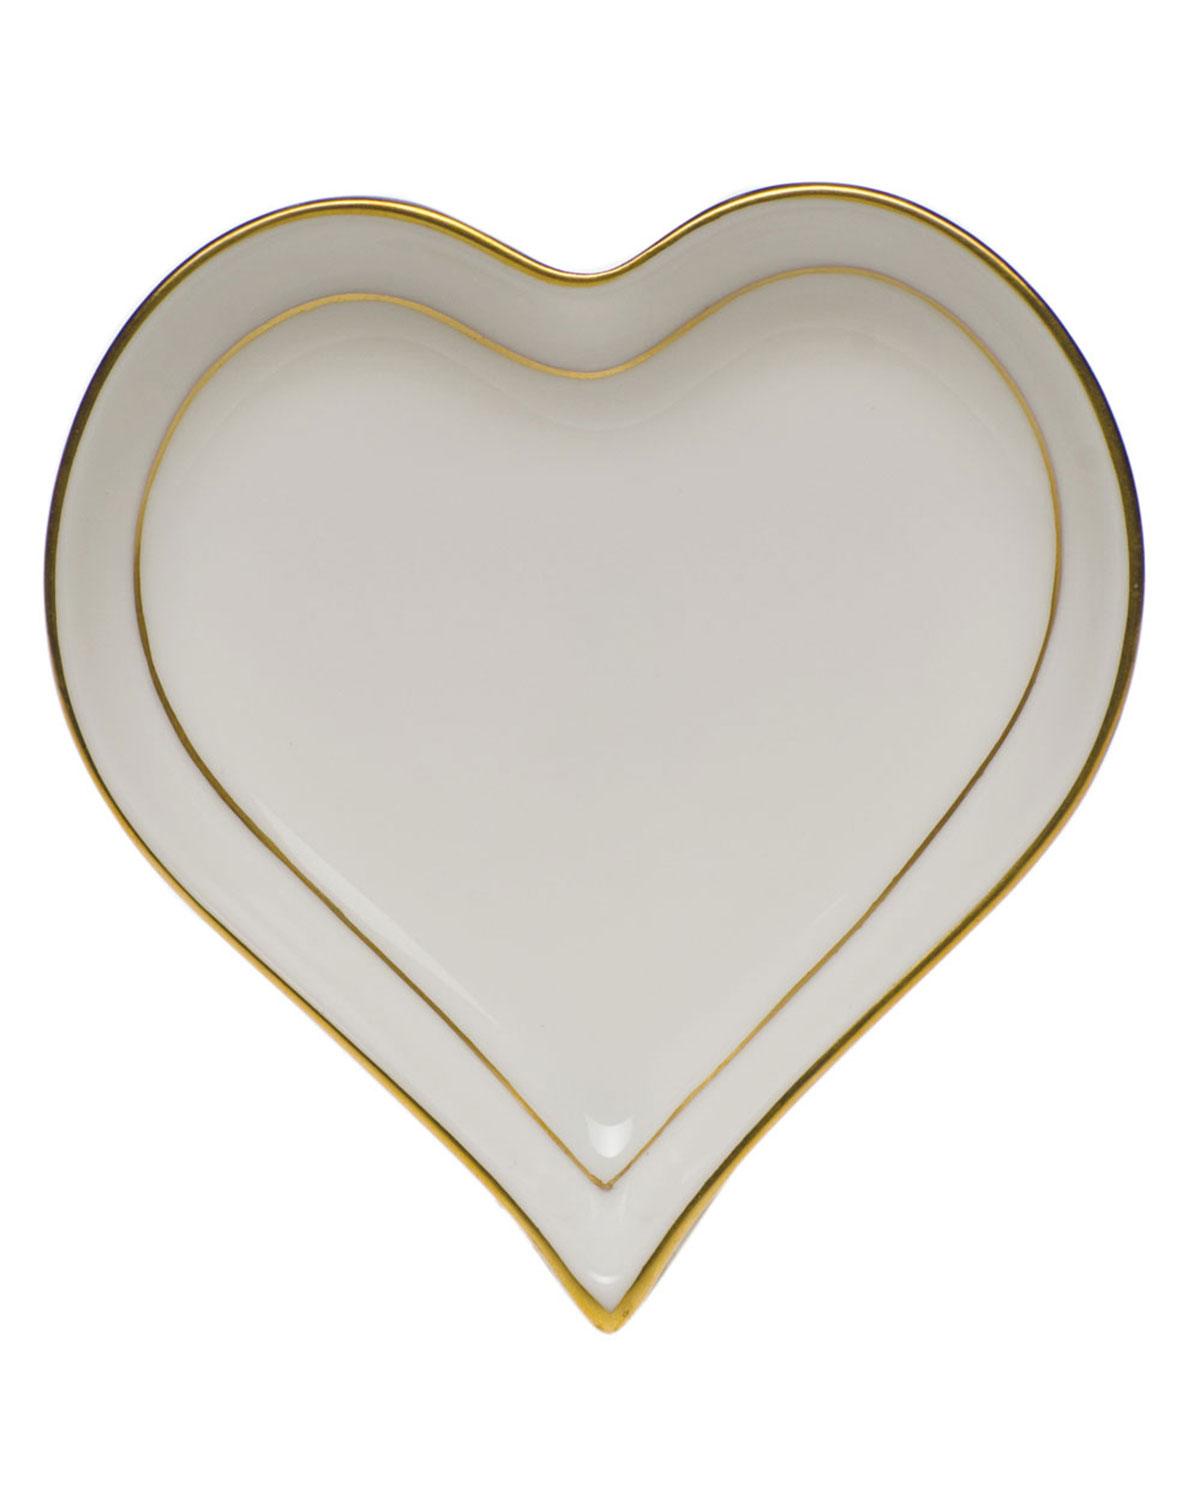 Herend Golden Edge Small Heart Tray